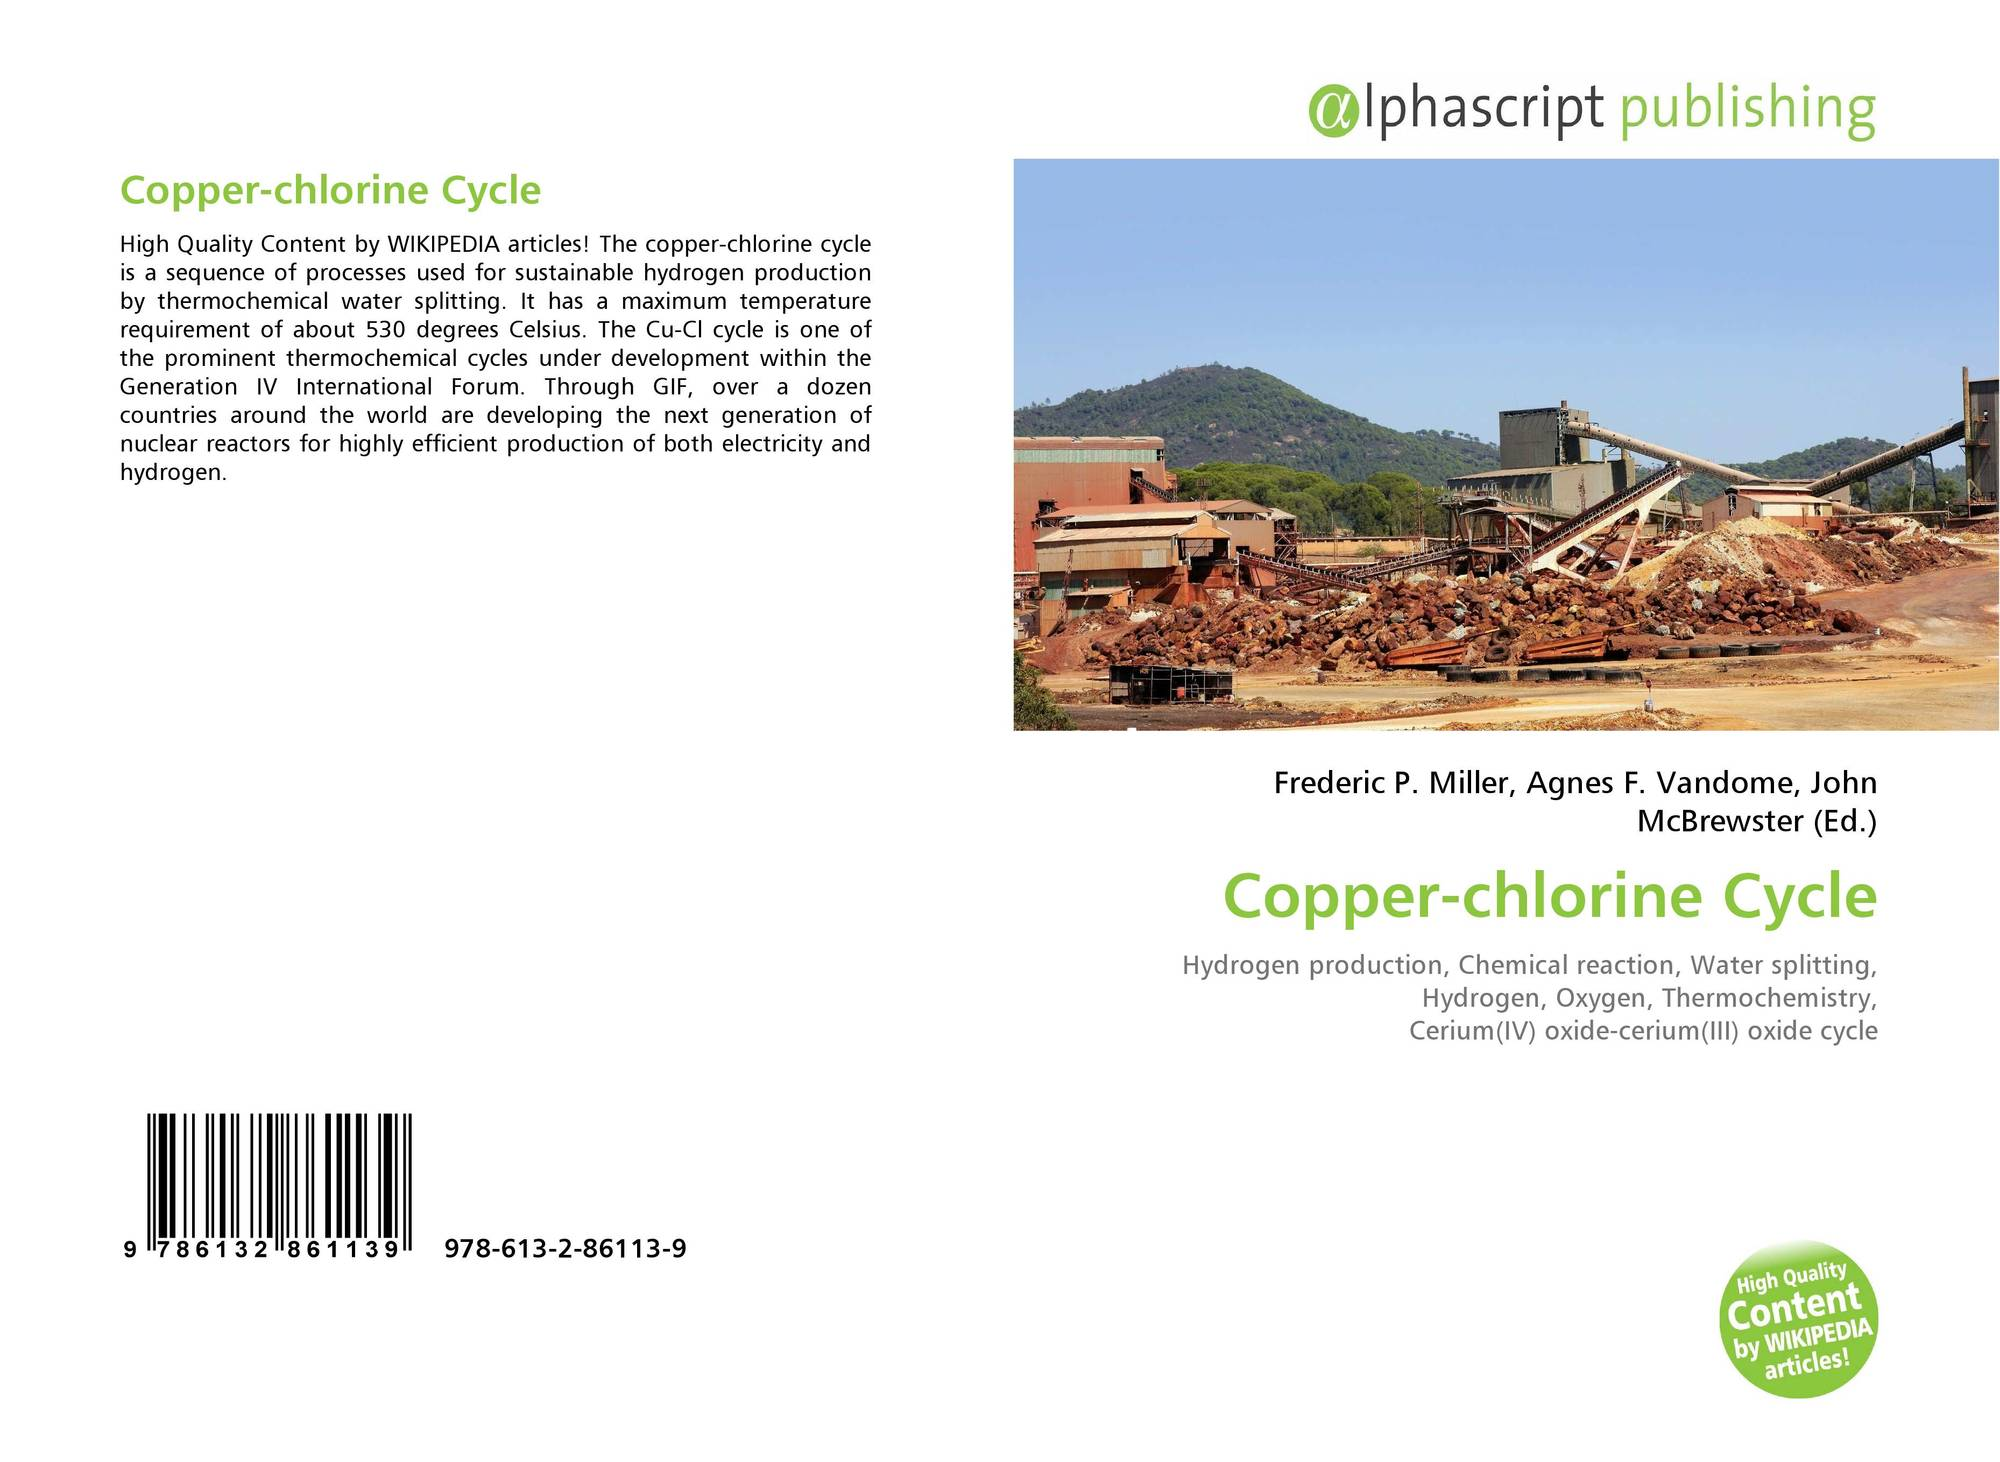 Copper-chlorine Cycle, 978-613-2-86113-9, 6132861130